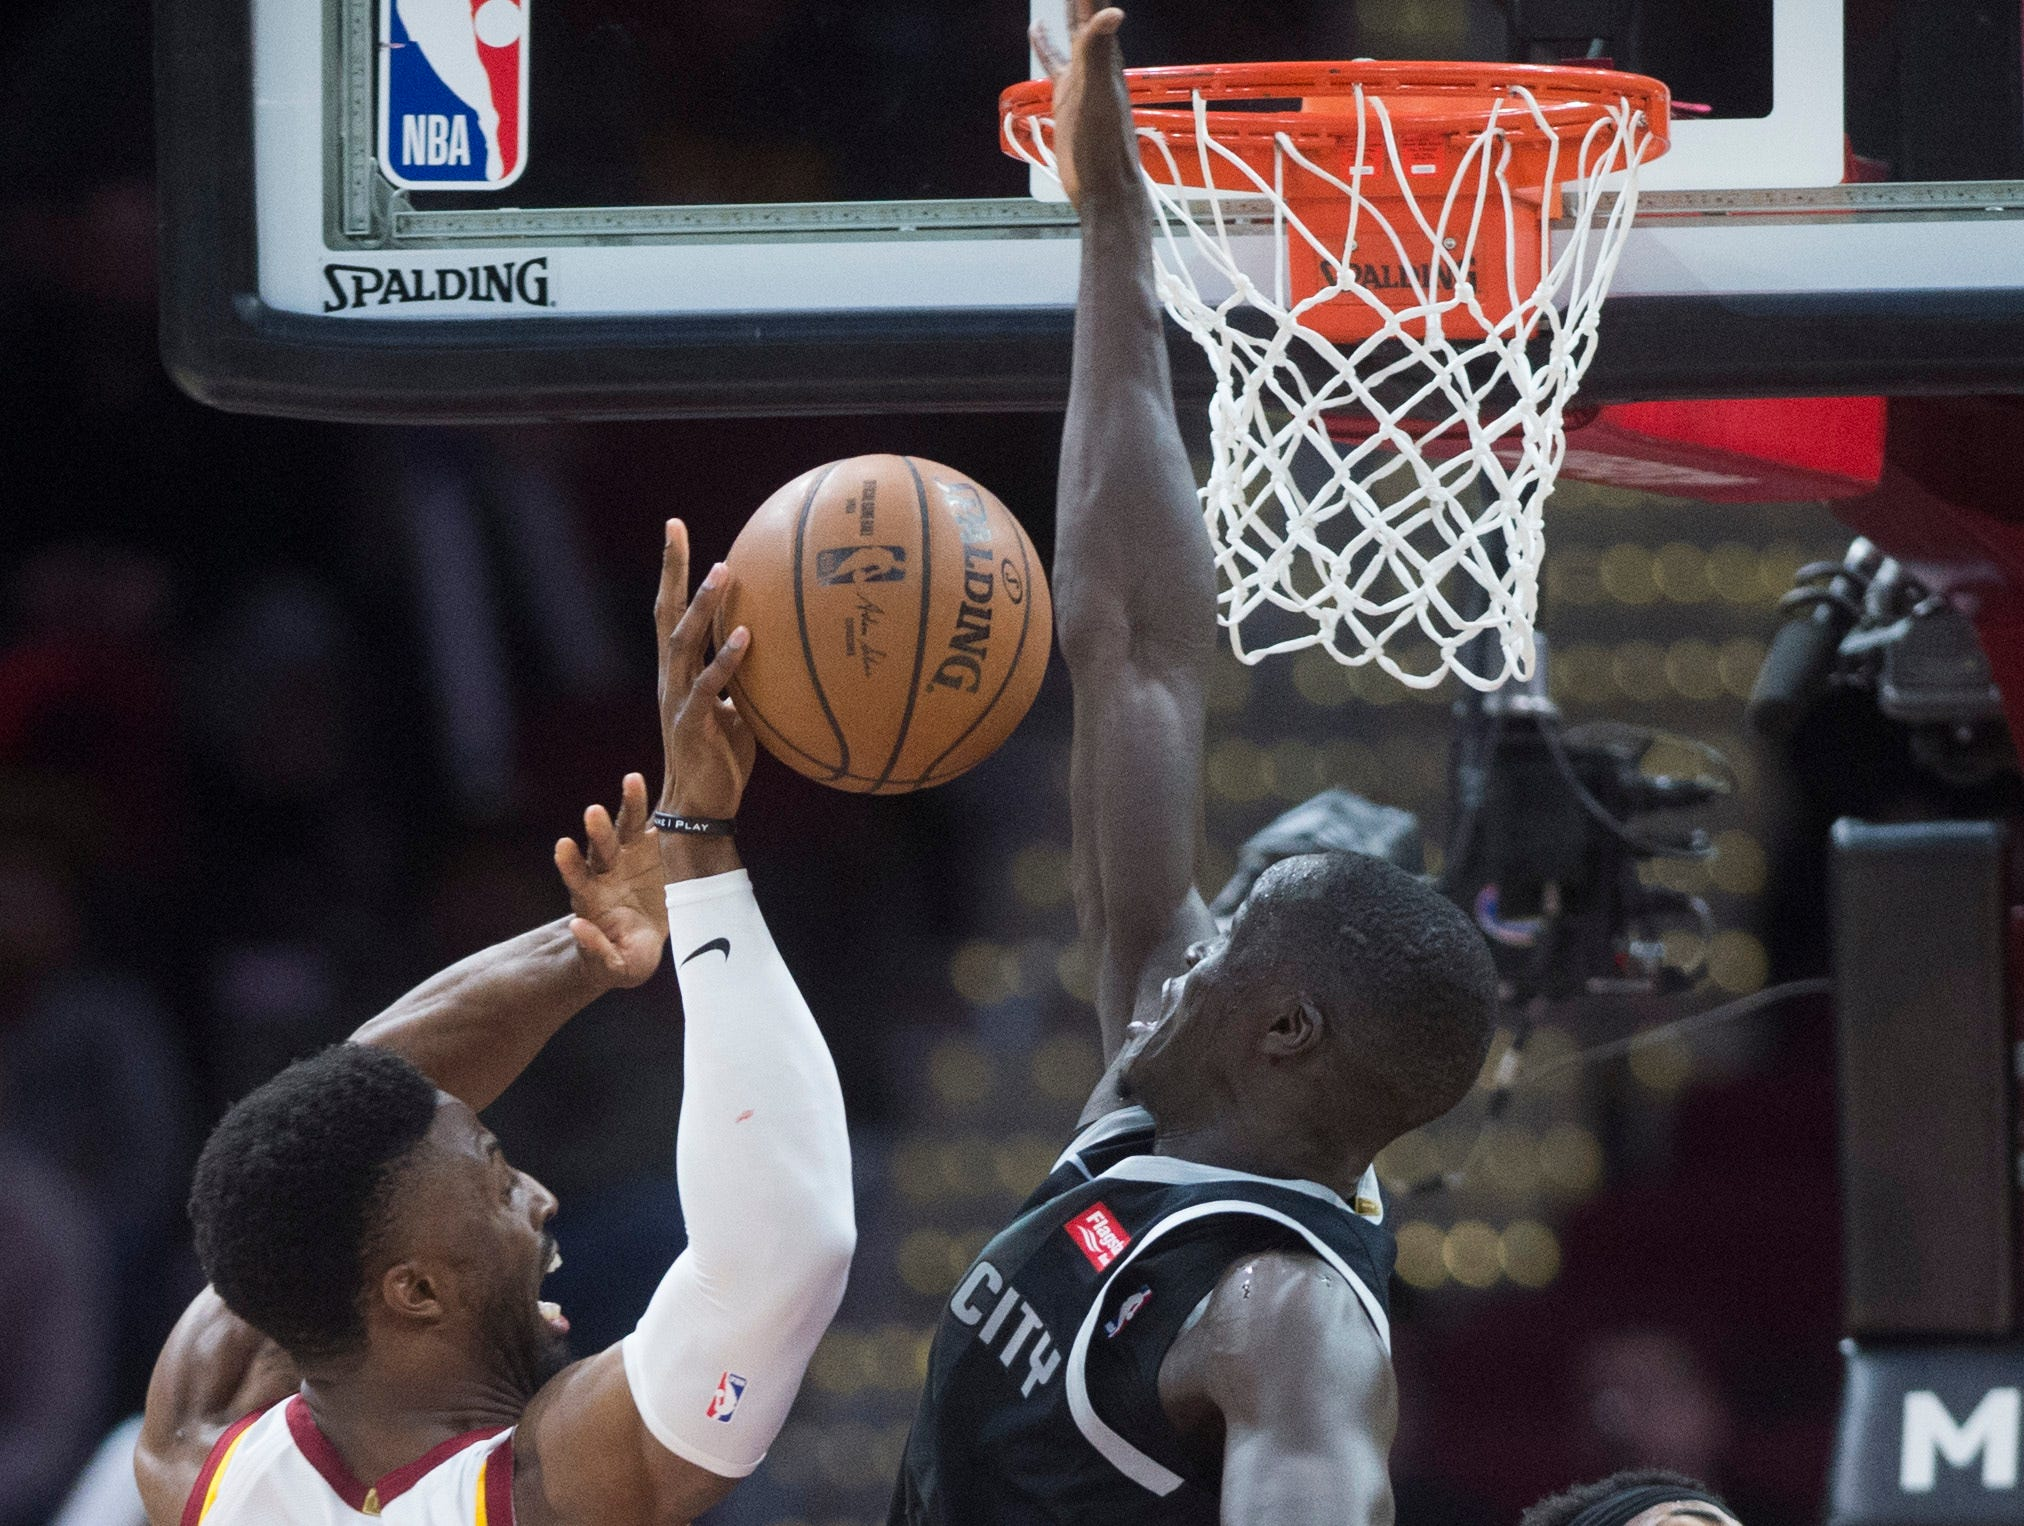 Detroit Pistons' forward Thon Maker, center, of Australia, blocks the shot of Cleveland Cavaliers' guard David Nwaba, left, as Detroit Pistons' center Andre Drummond falls in the second half of an NBA basketball game.